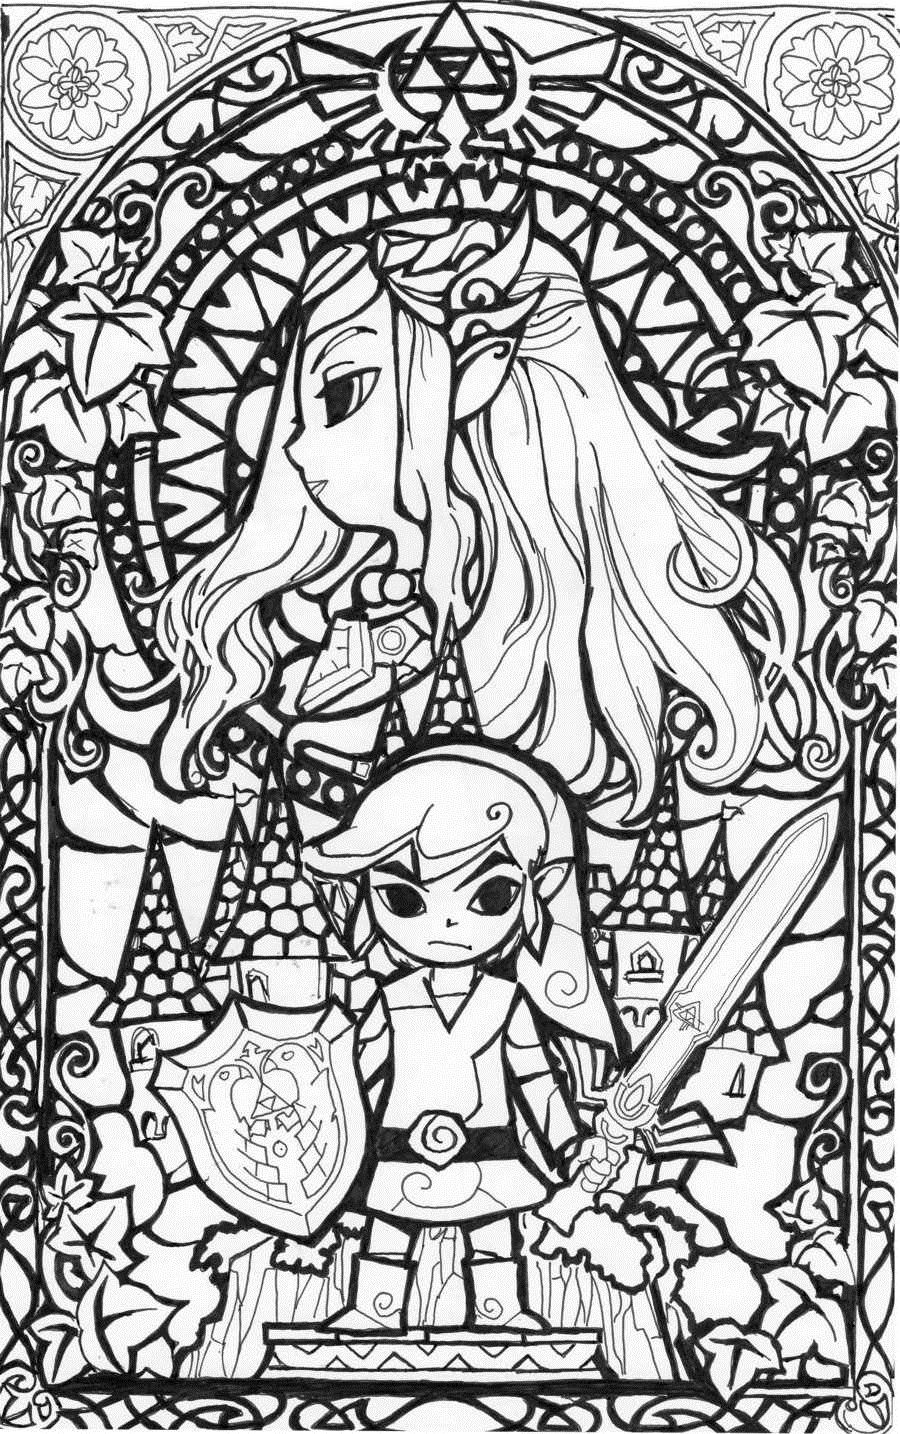 Legend of Zelda | Cool coloring pages, Coloring pages ...